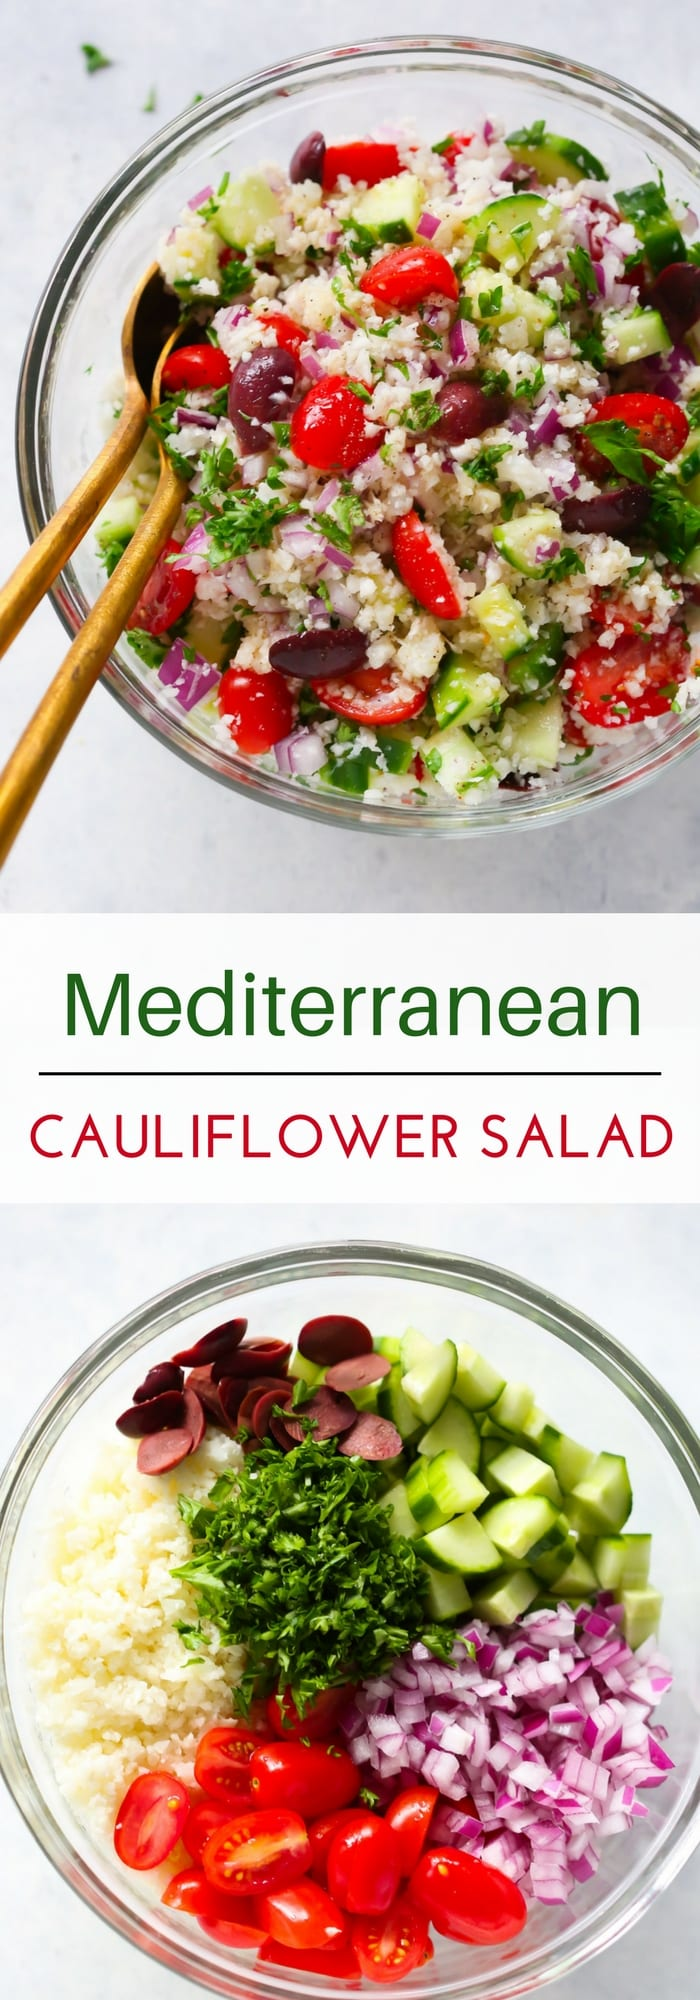 Mediterranean Cauliflower Salad - This Mediterranean Cauliflower Salad is loaded with fresh summer veggies and it's vegan, gluten-free and perfect for a low-carb diet.